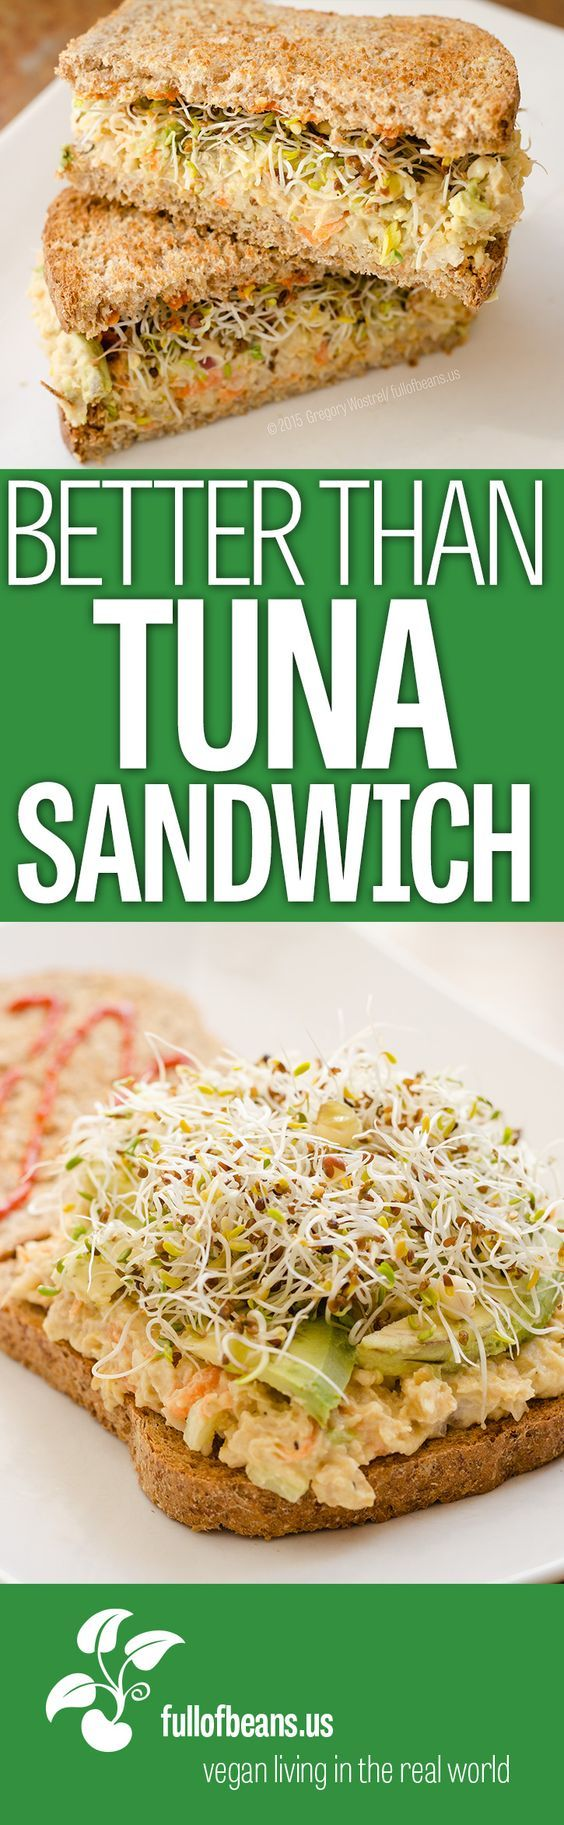 Vegan Tuna Salad Sandwich? We are often asked what we pack for lunch. Portable and easy meals, like the classic tuna salad sandwich, are an essential for folks heading off to school or work for the day. This chickpea vegan tuna salad is an easy, satisfying and delicious vegan alternative to the usual non-vegan sandwich fillers.